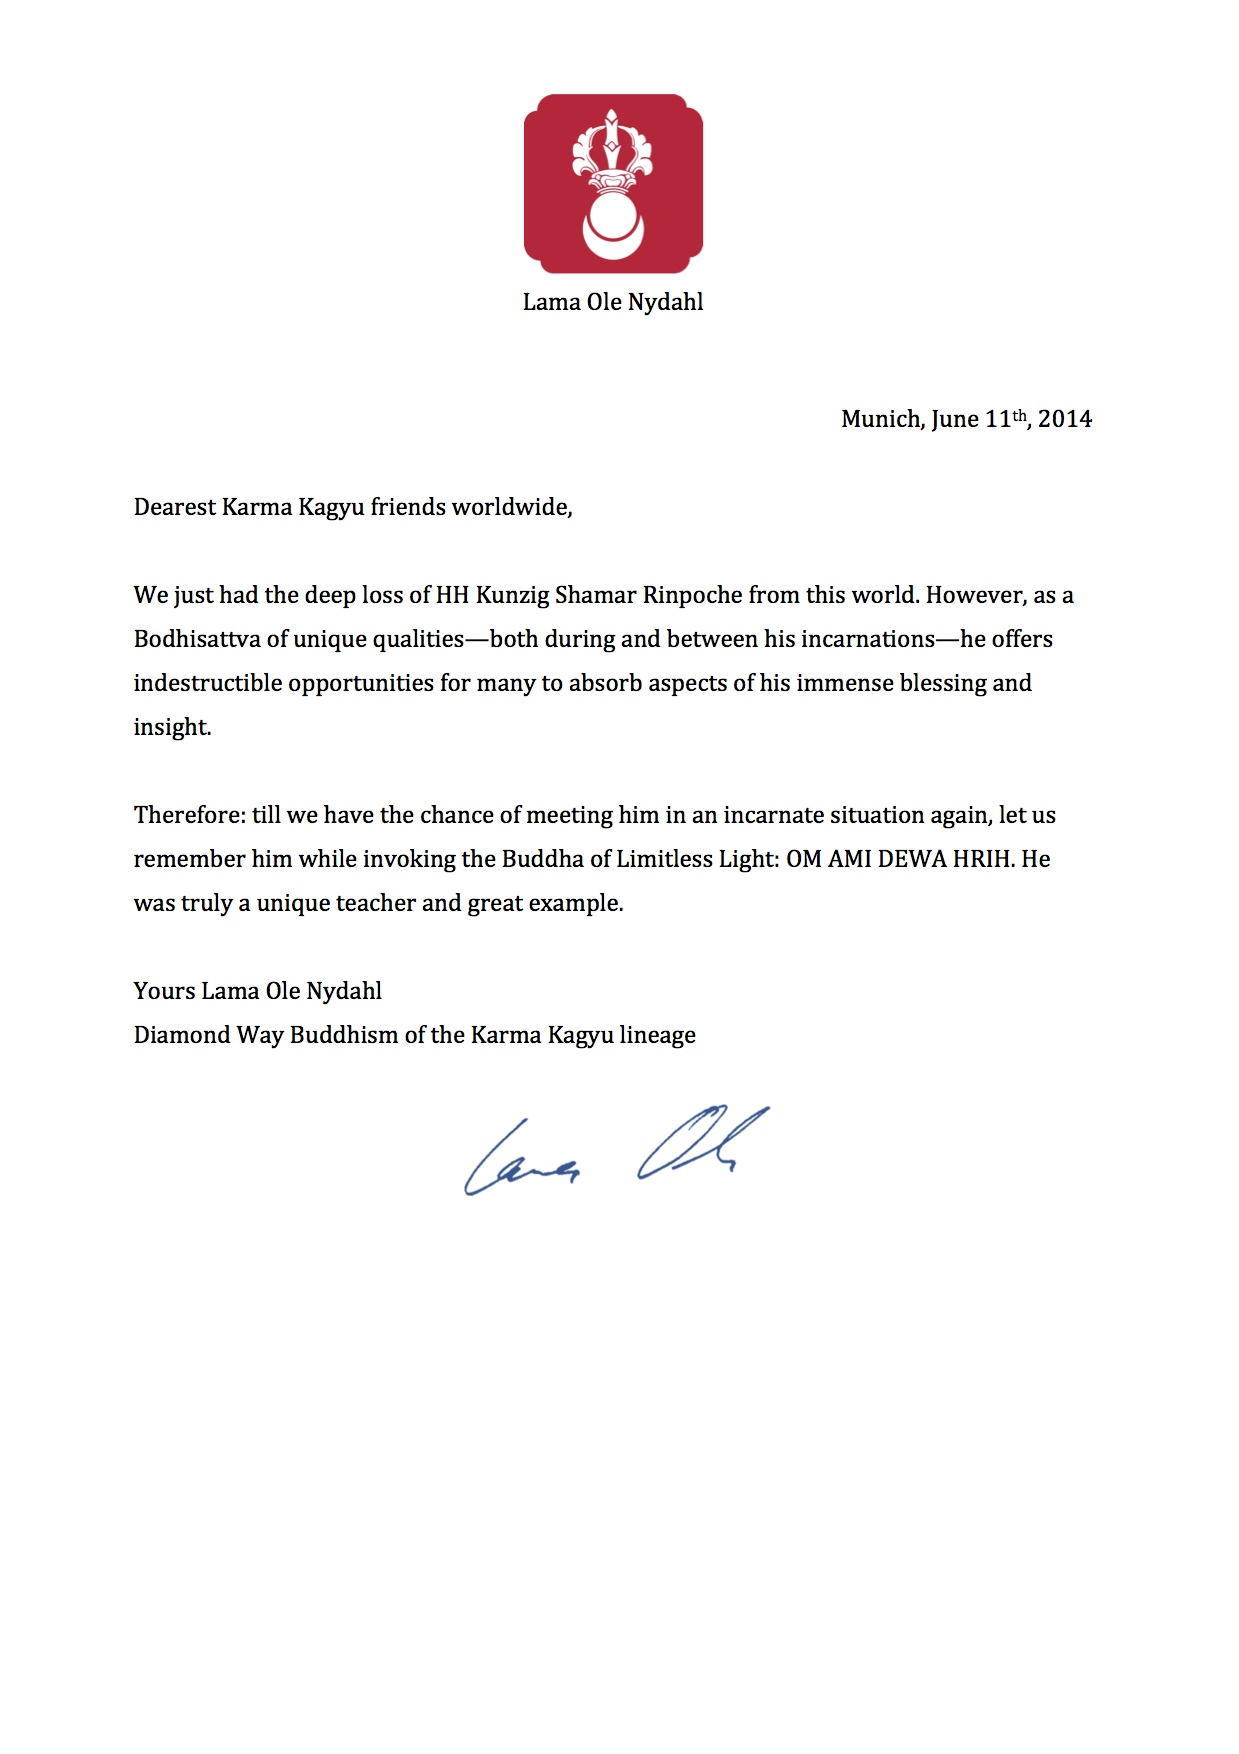 condolence letter from lama ole